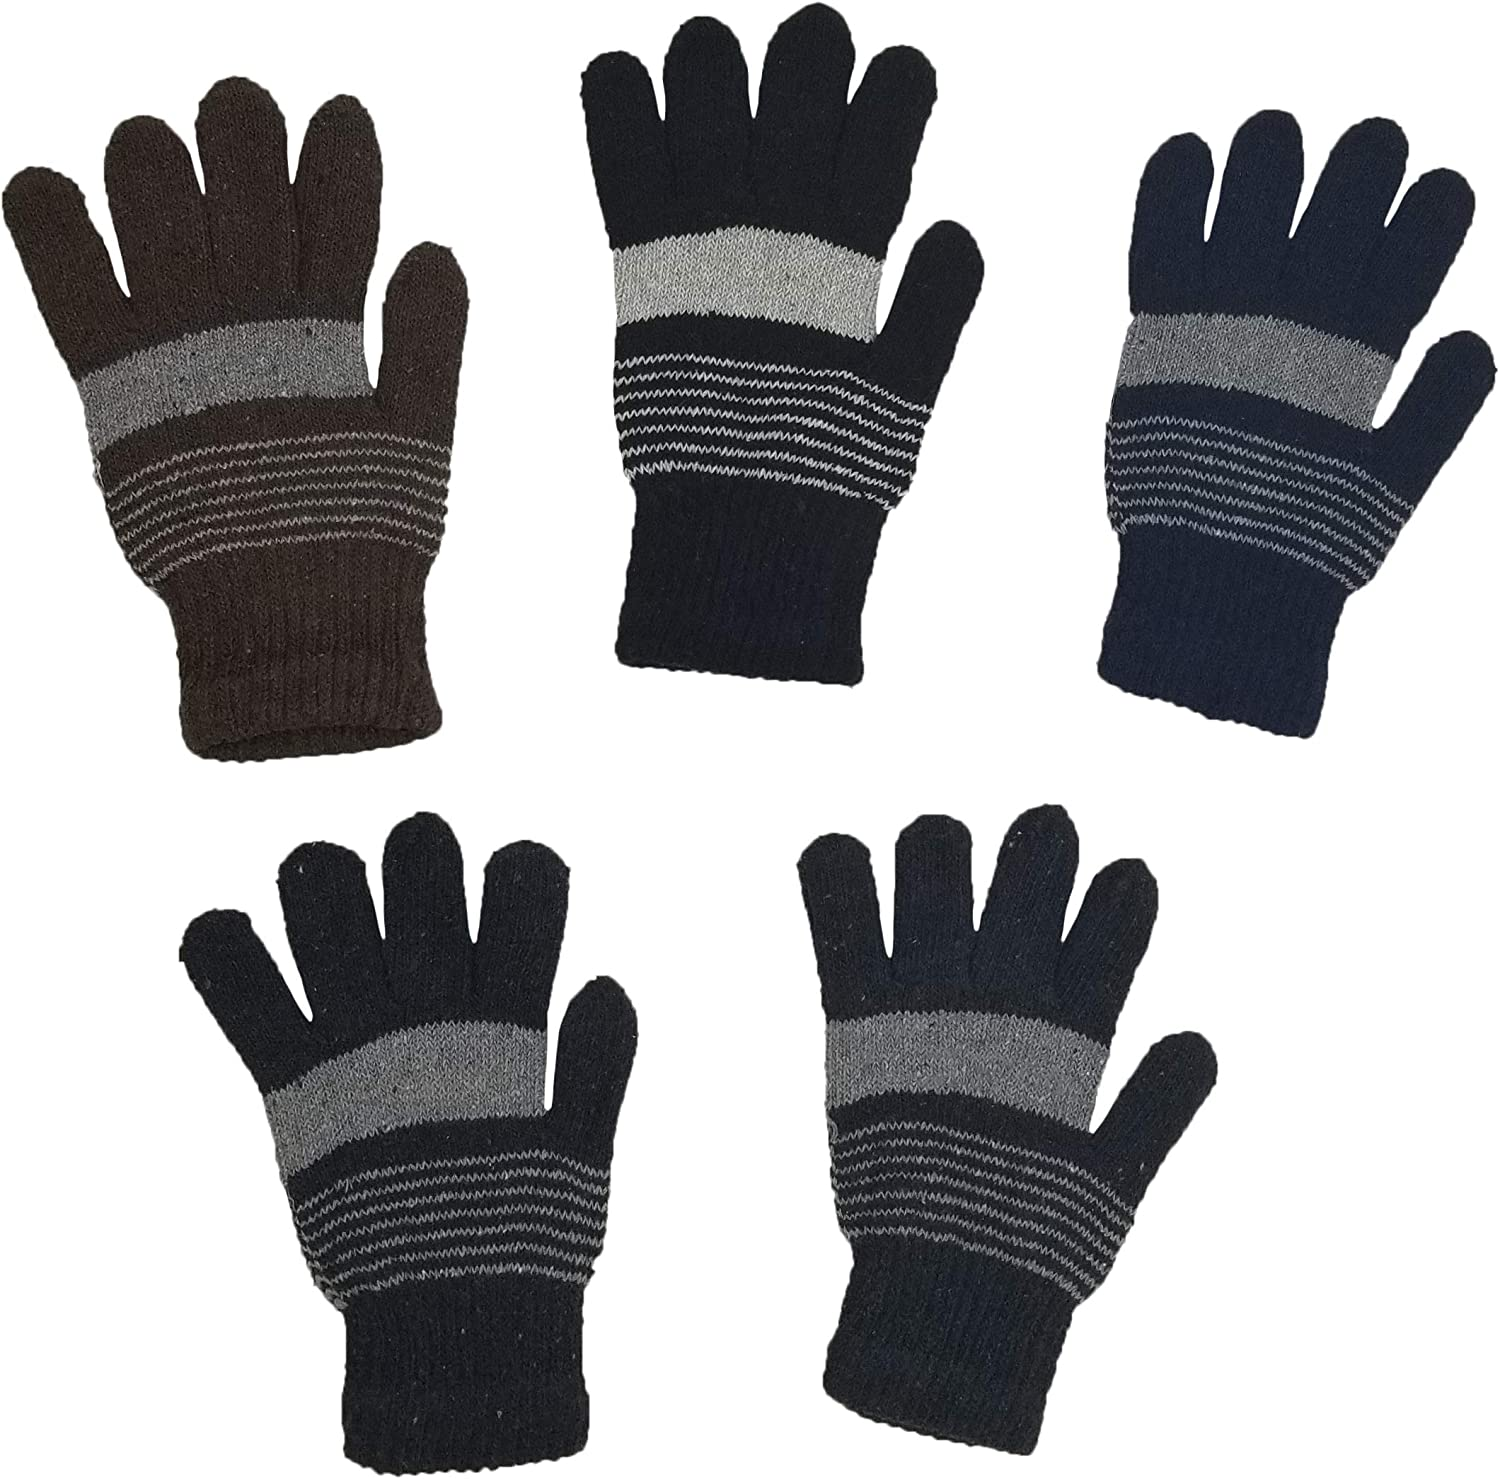 I/&S Womens Warm Stretchy Winter Magic Gloves Black Assorted Solid Colors 6 or 12 Pairs